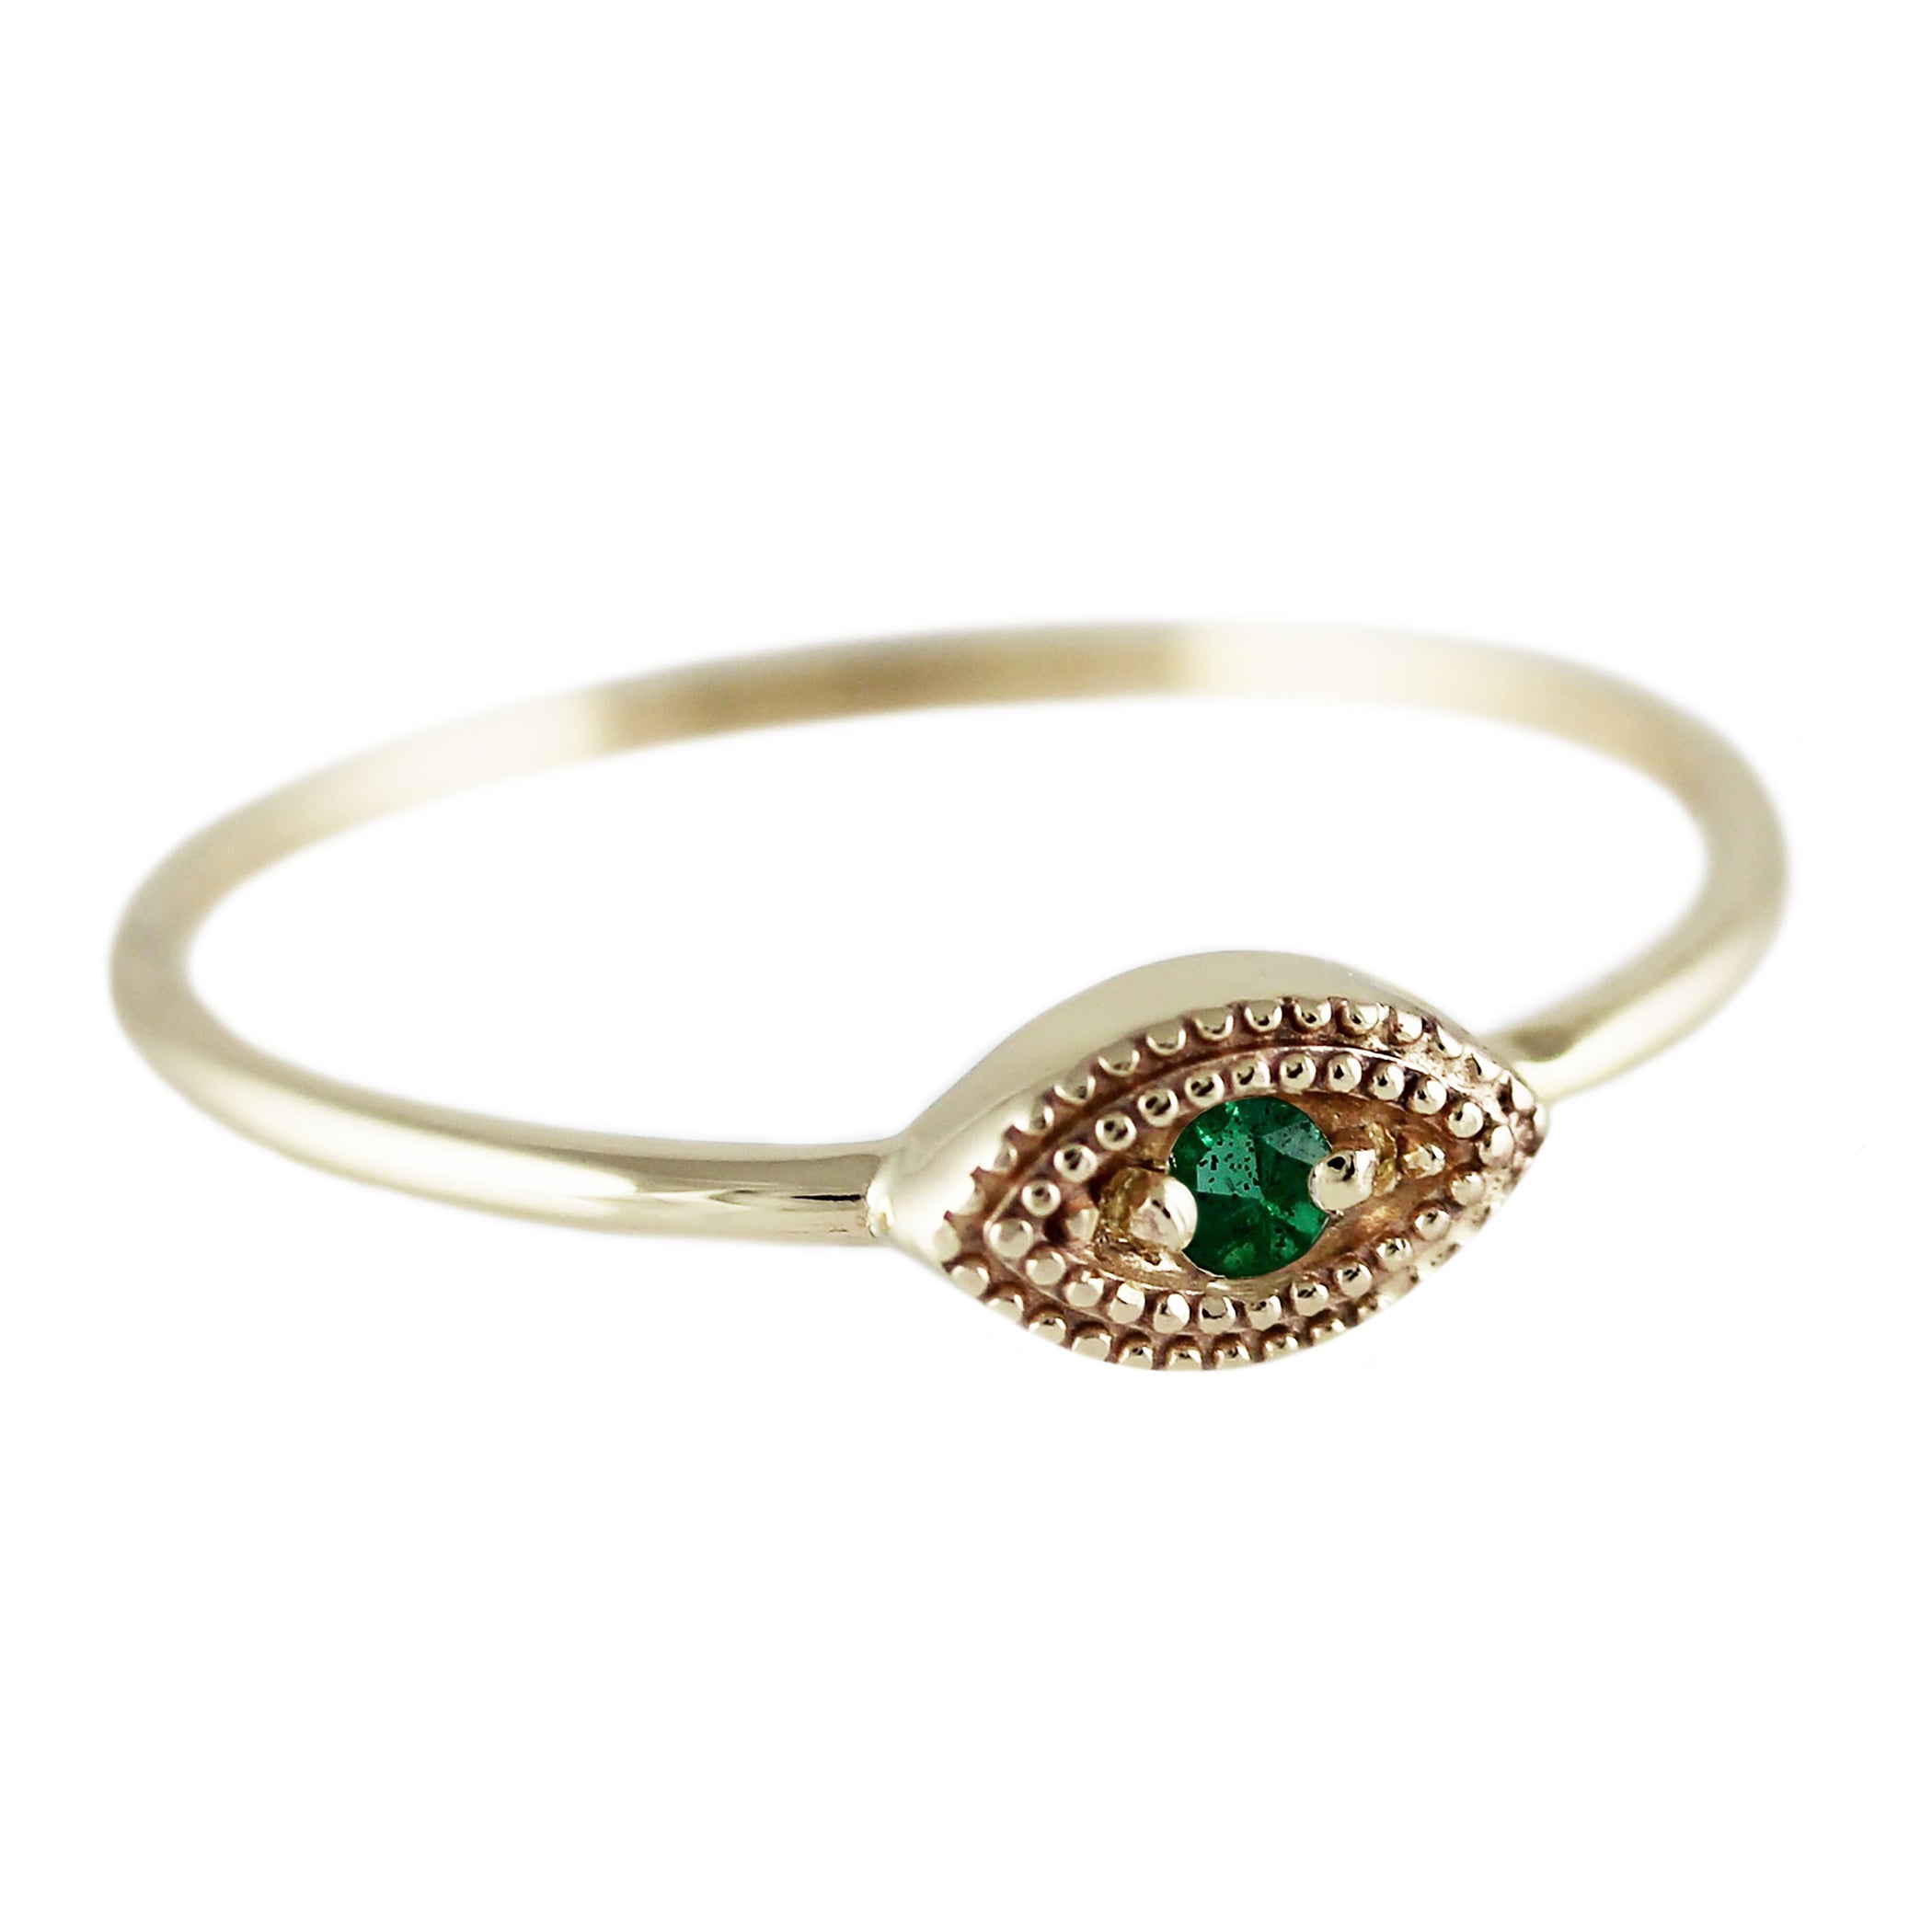 EMERALD EYE RING